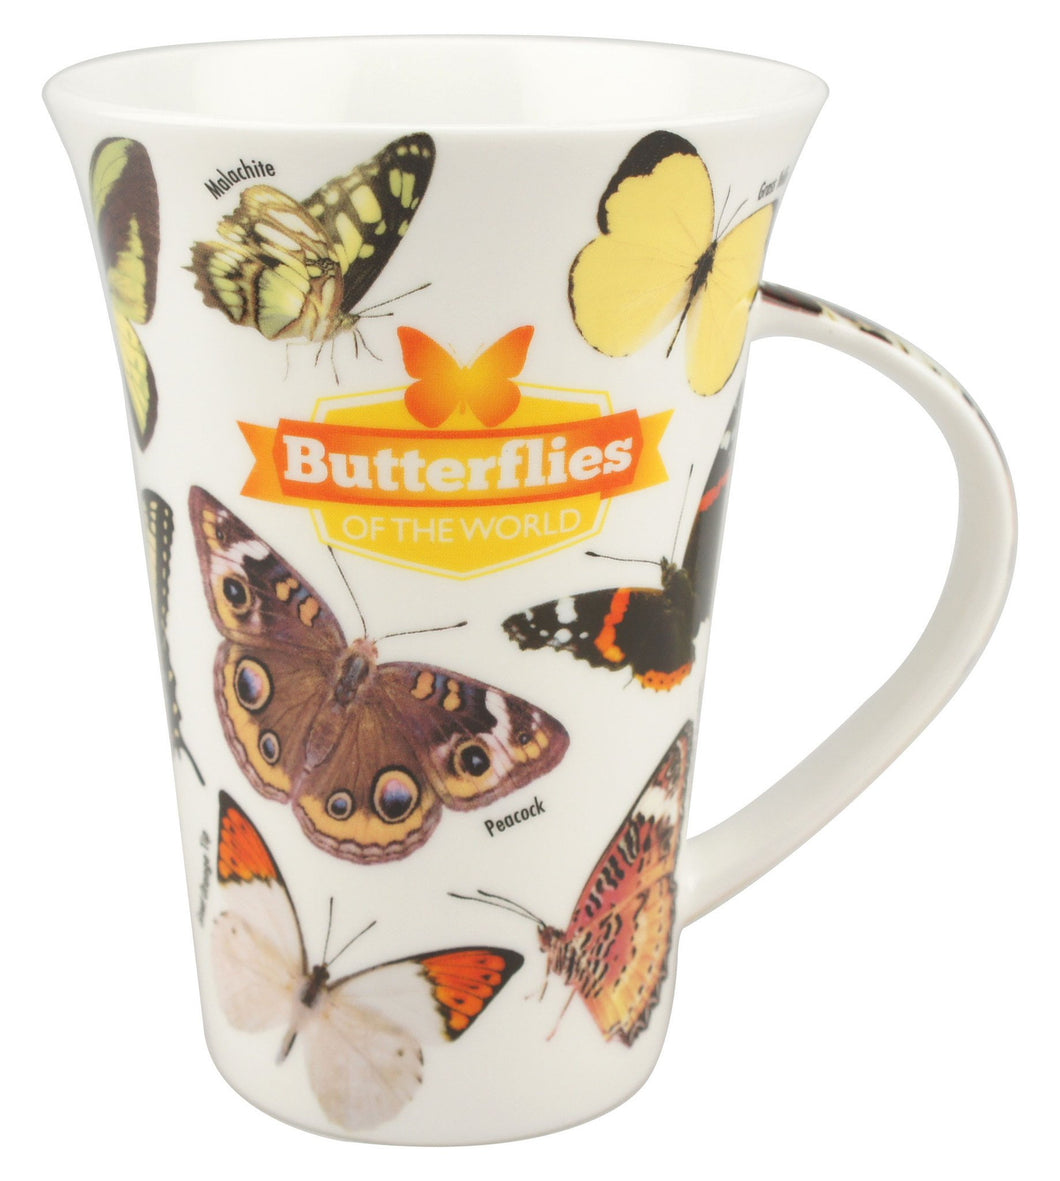 Butterflies of the World i-Mug - McIntosh Shop - 1